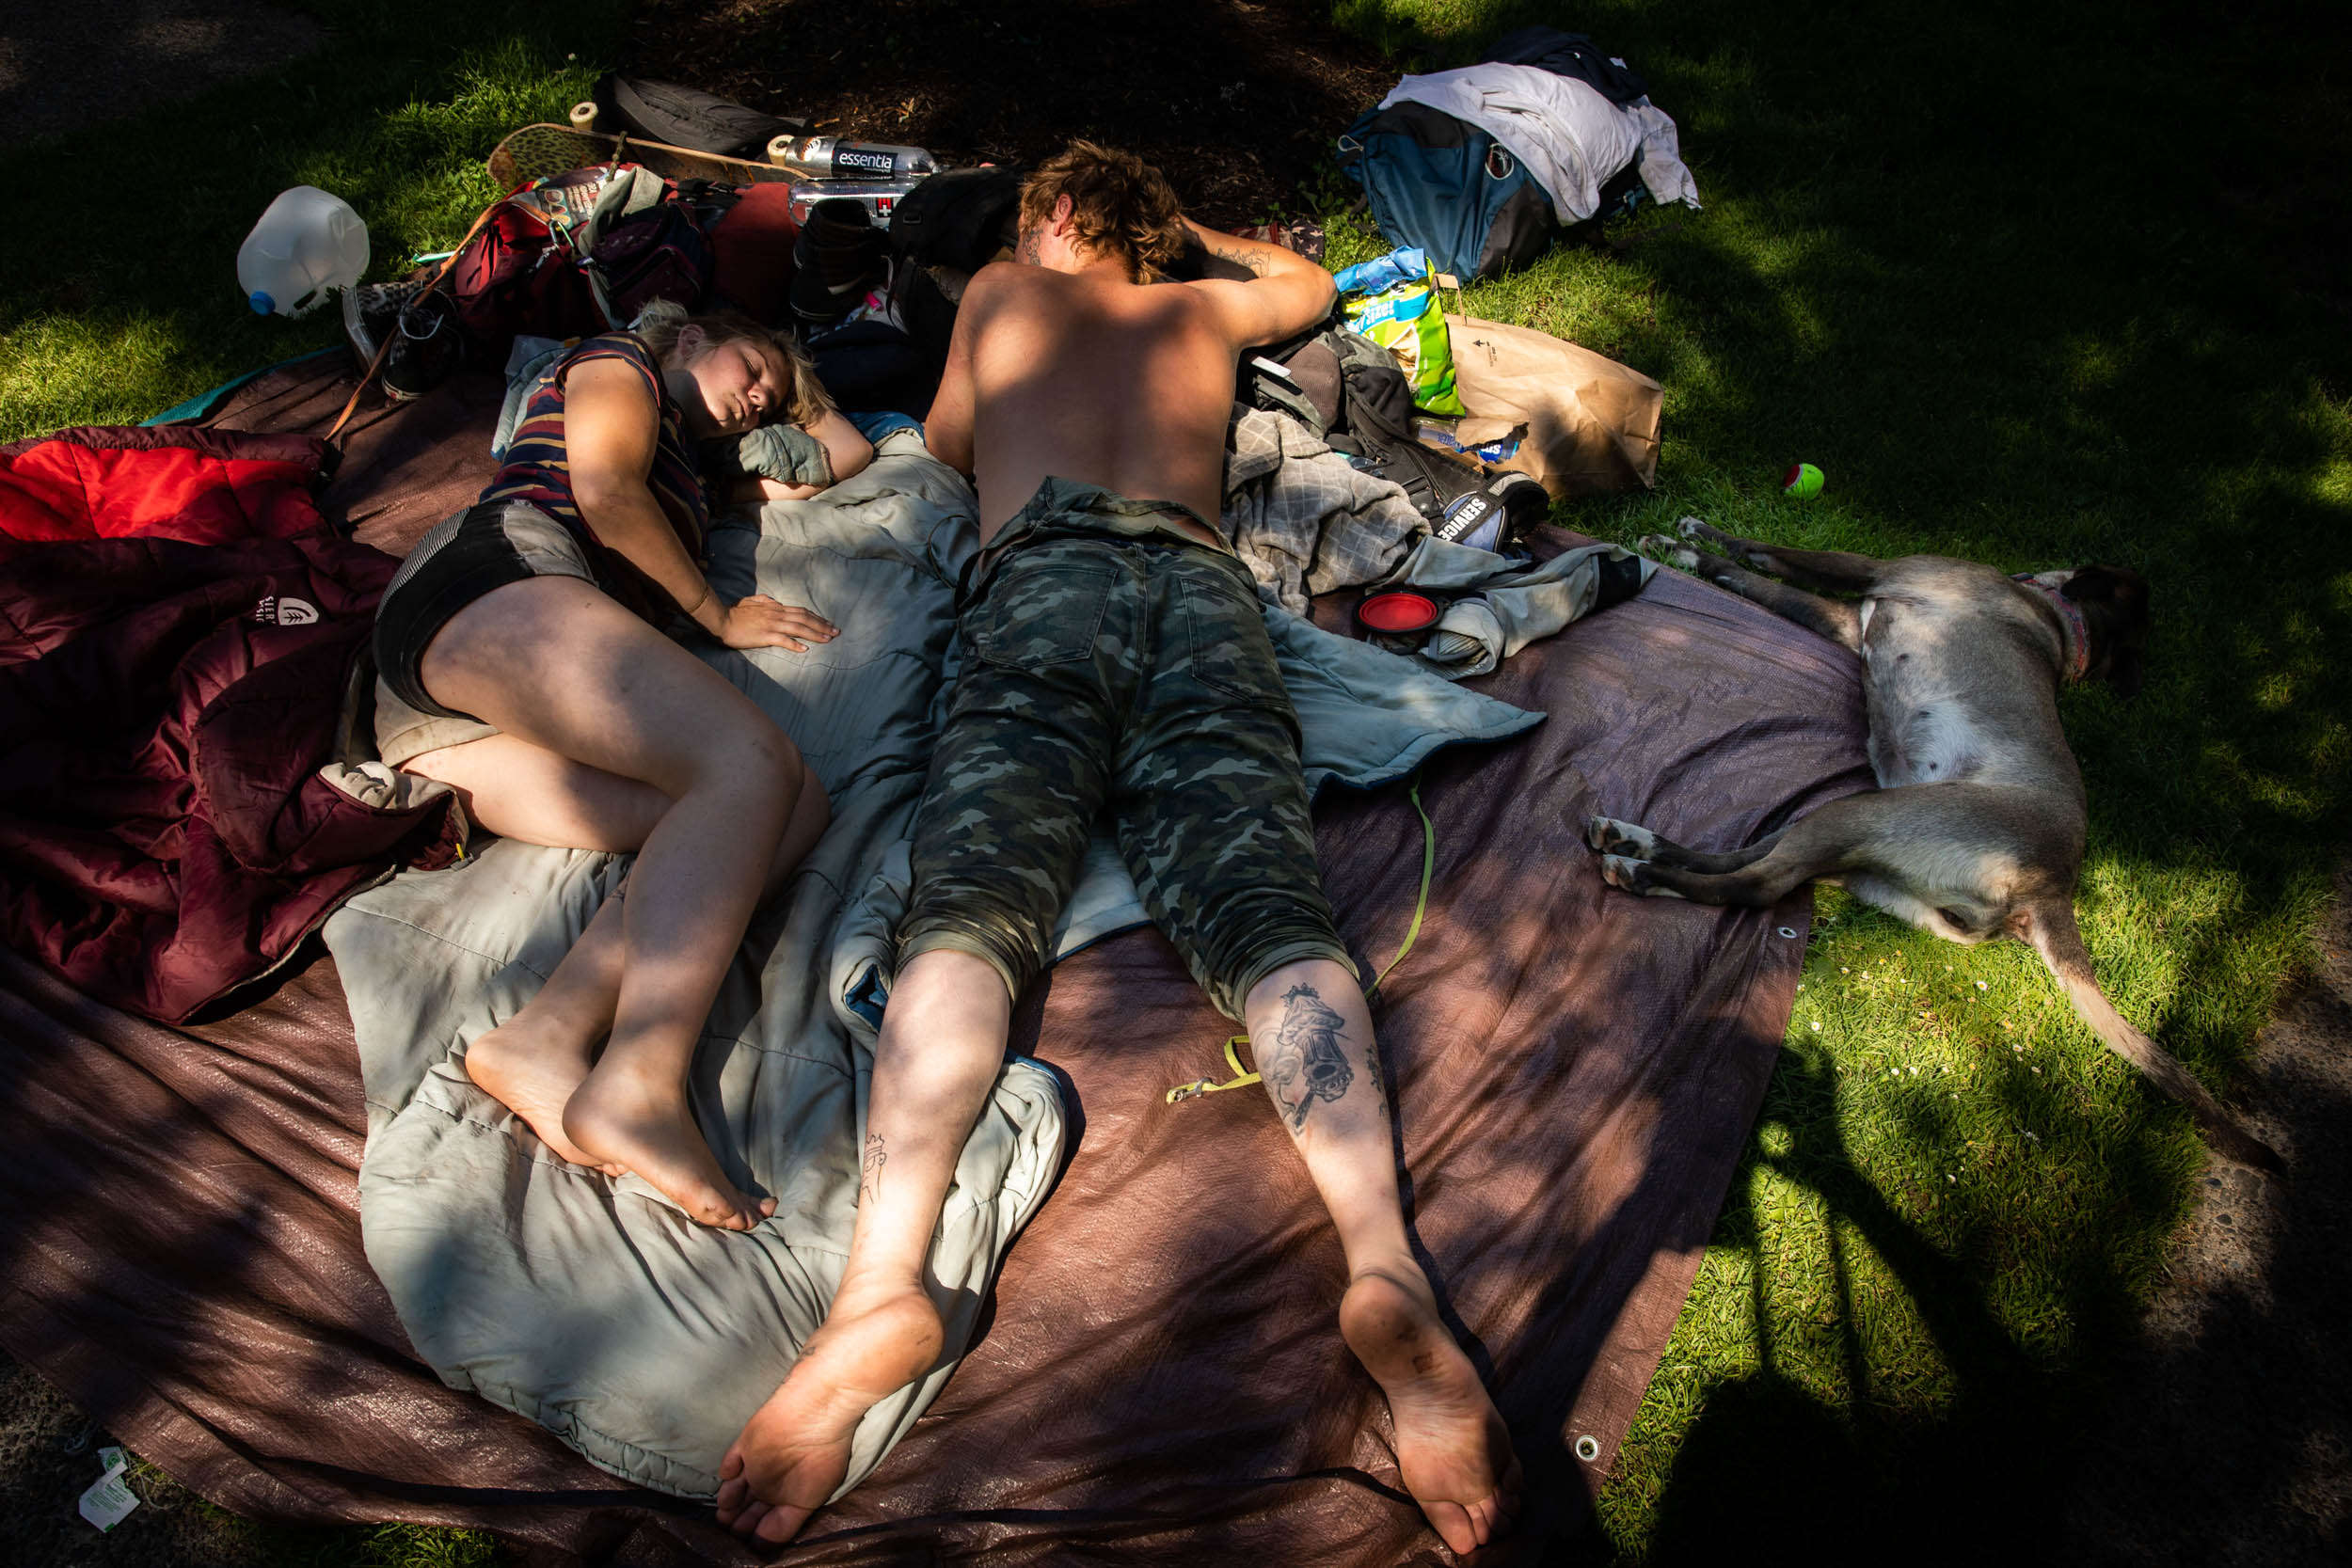 A couple and their dog lay in the shade during a heat wave in Portland, Oregon. on Monday, June 28, 2021. Credit: Maranie Staab/Bloomberg via Getty Images